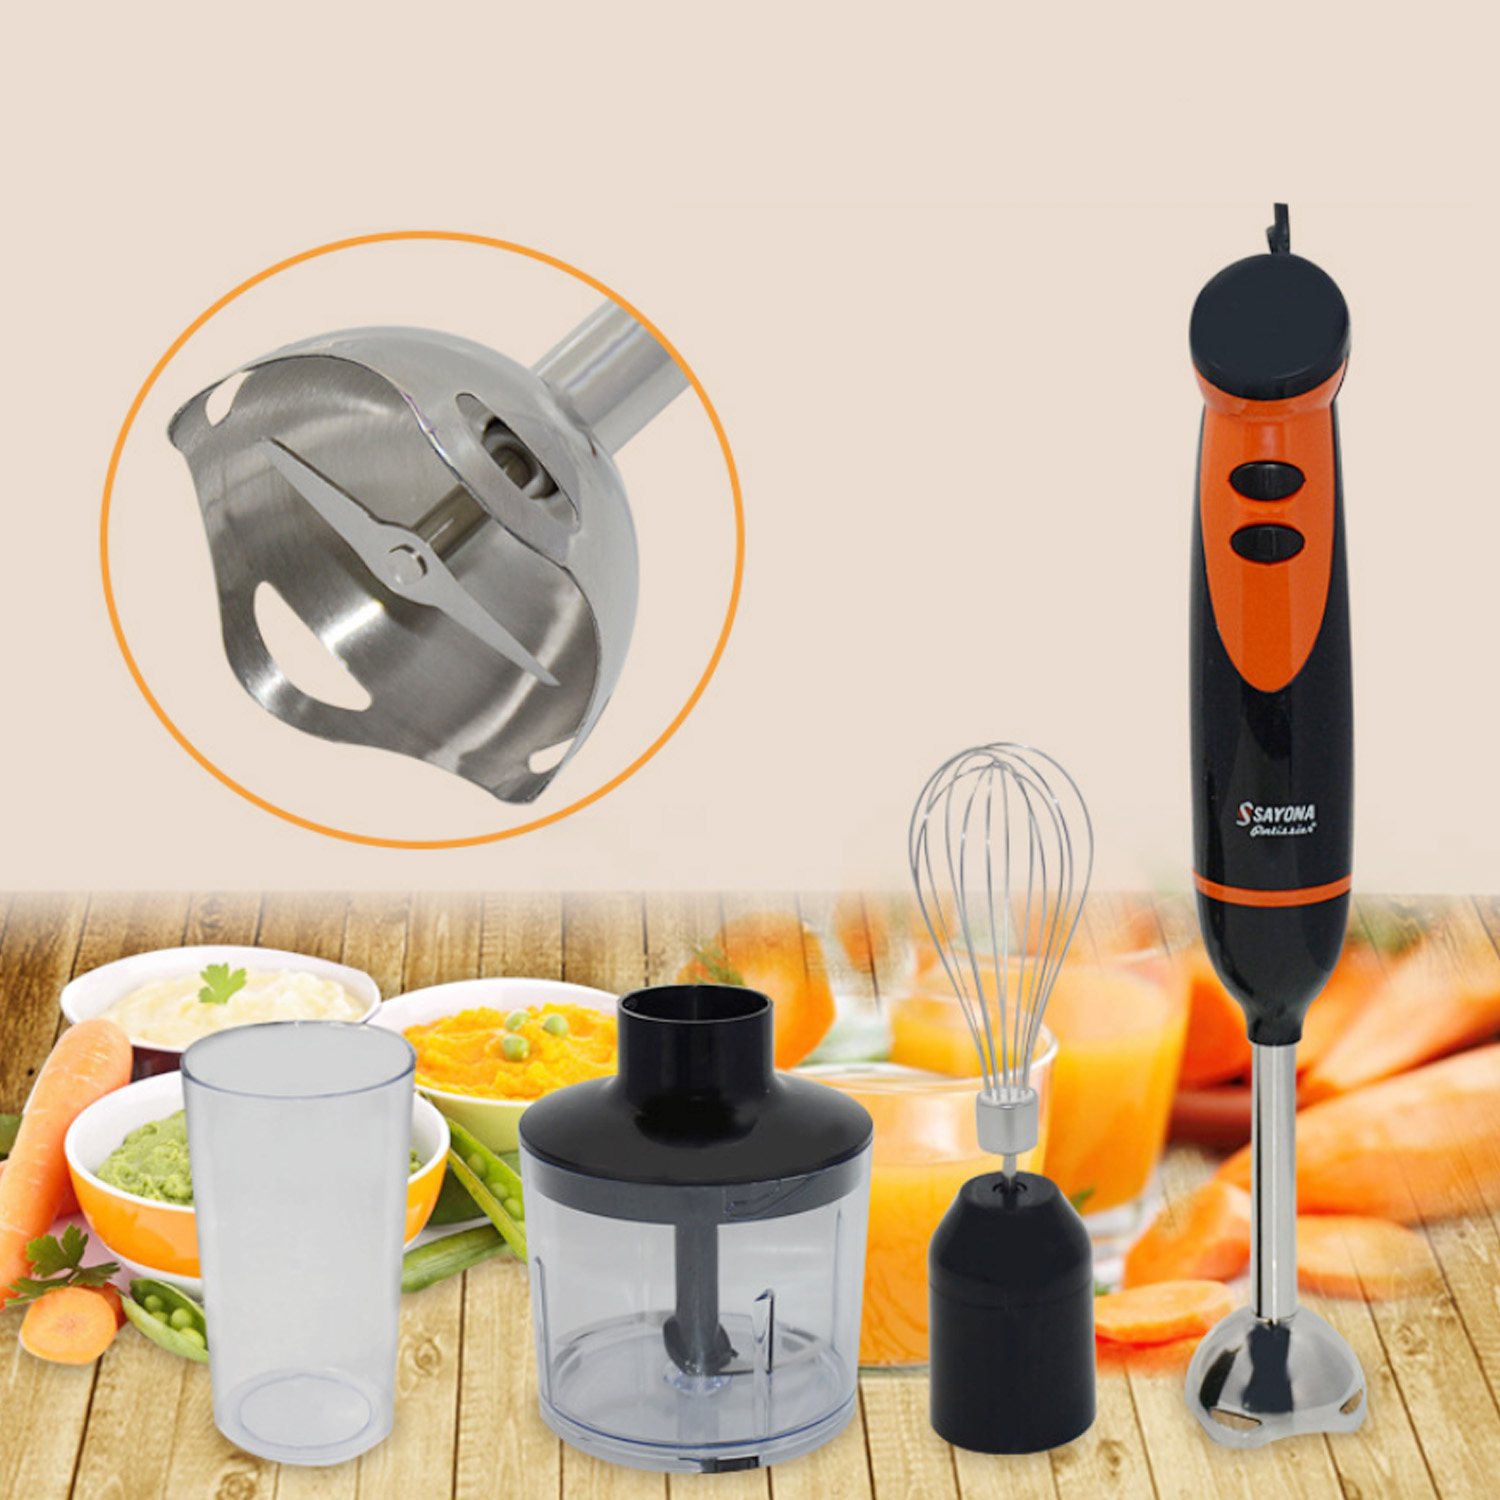 Behogar 4 in 1 Adjustable Speed Multi functional Electric Hand Blender for Kitchen Smoothies Milk Shakes Soups Baby Food EU Plug